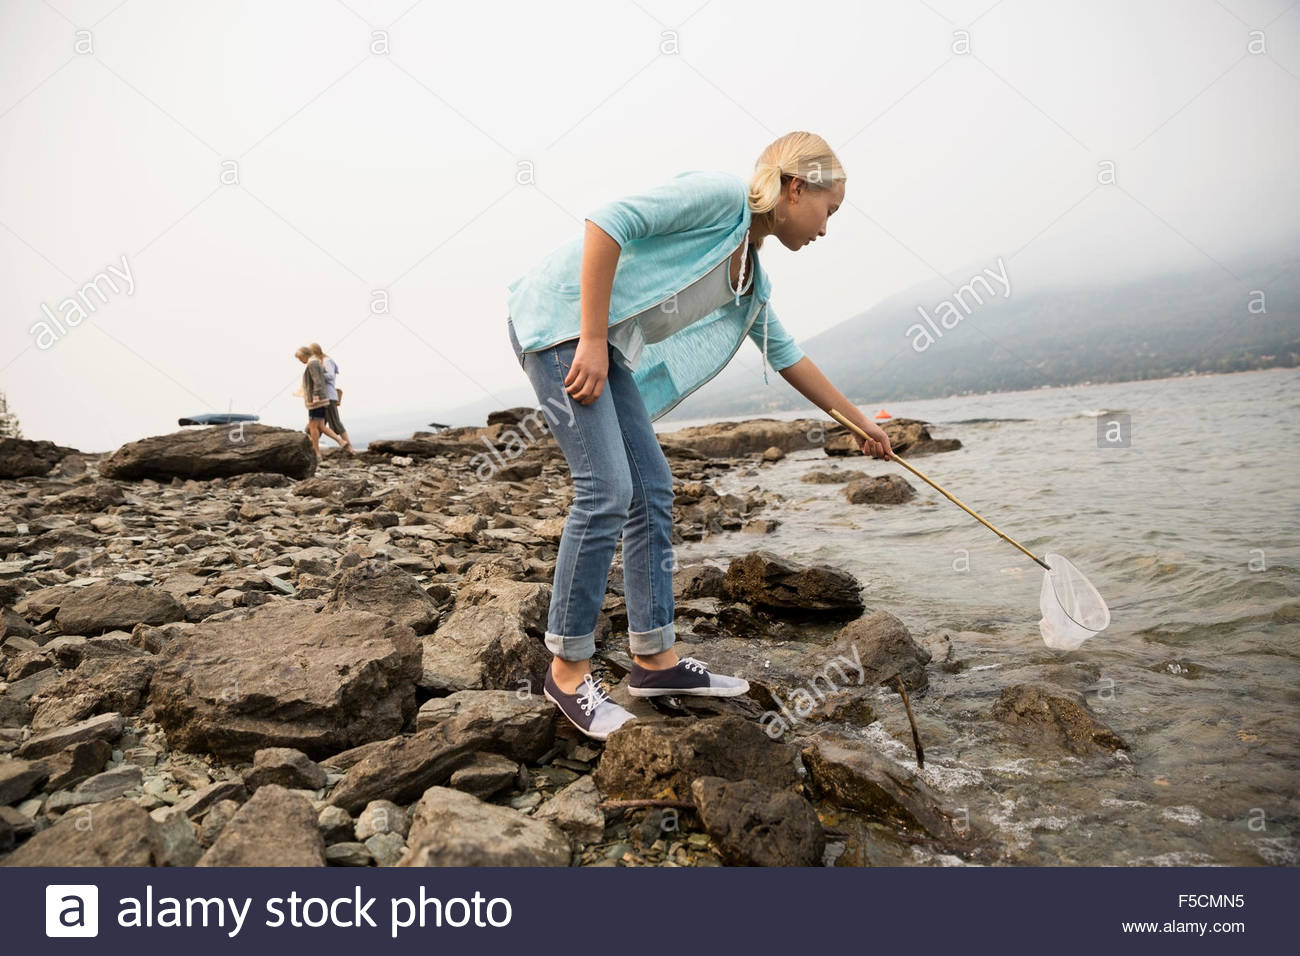 Girl fishing with net at craggy lakeside - Stock Image